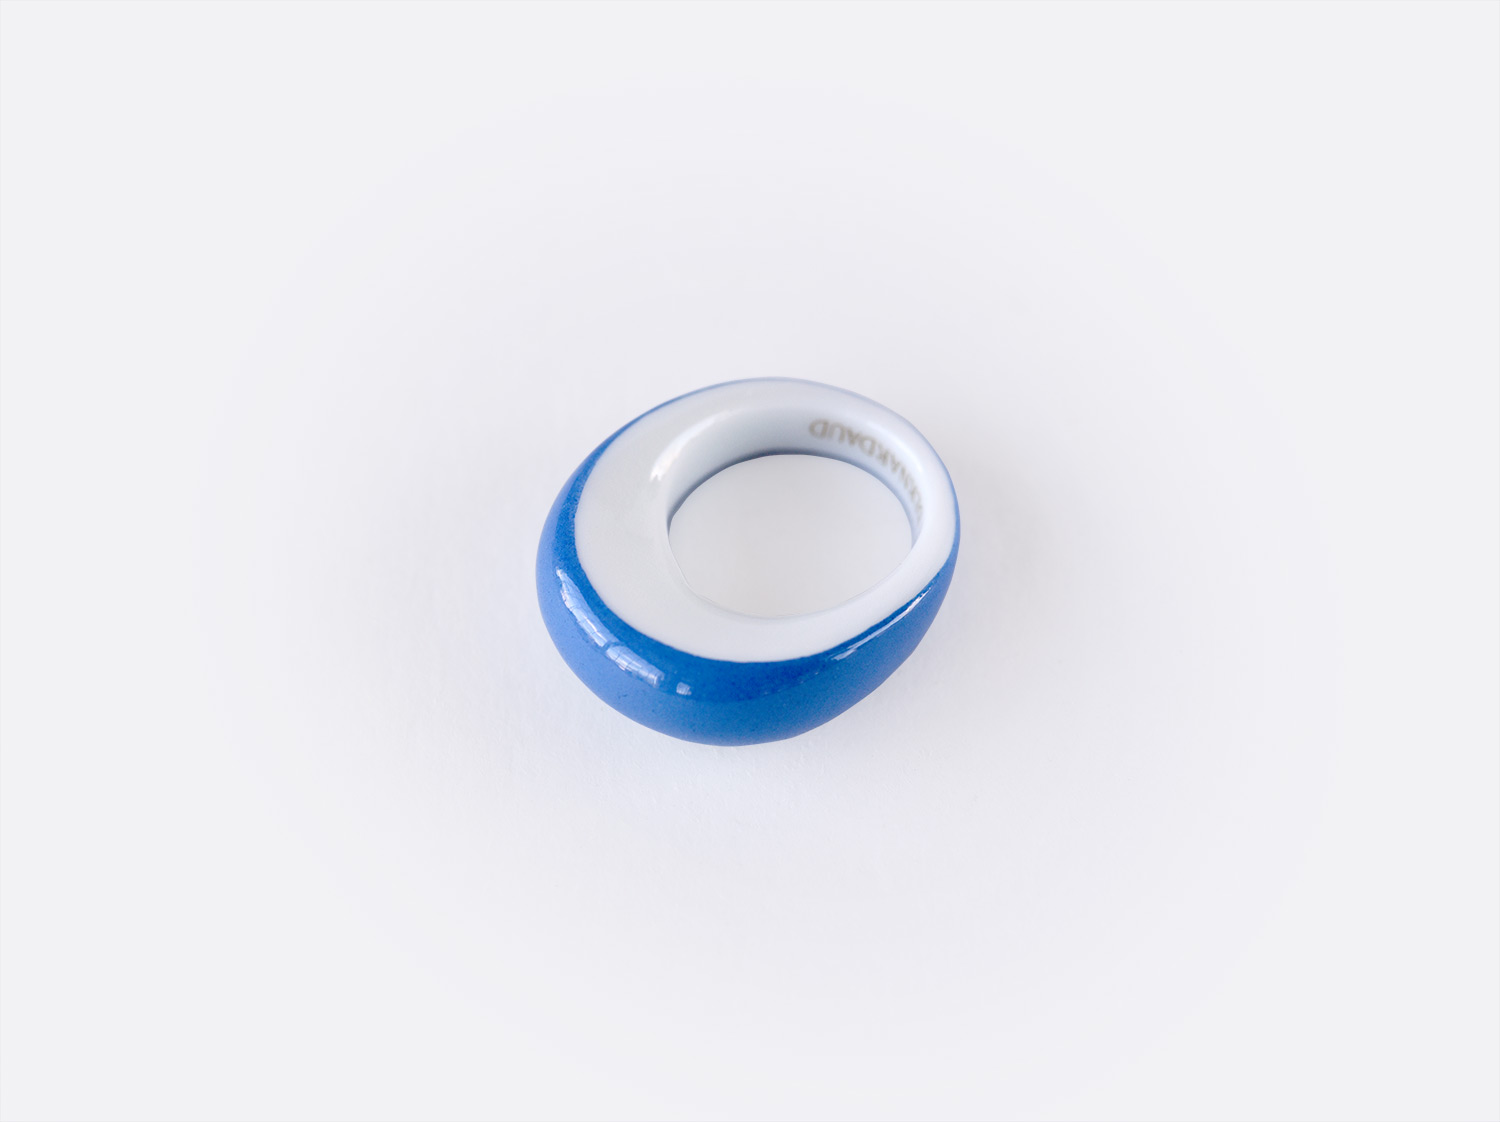 China Alba bleu Ring of the collection ALBA BLEU | Bernardaud